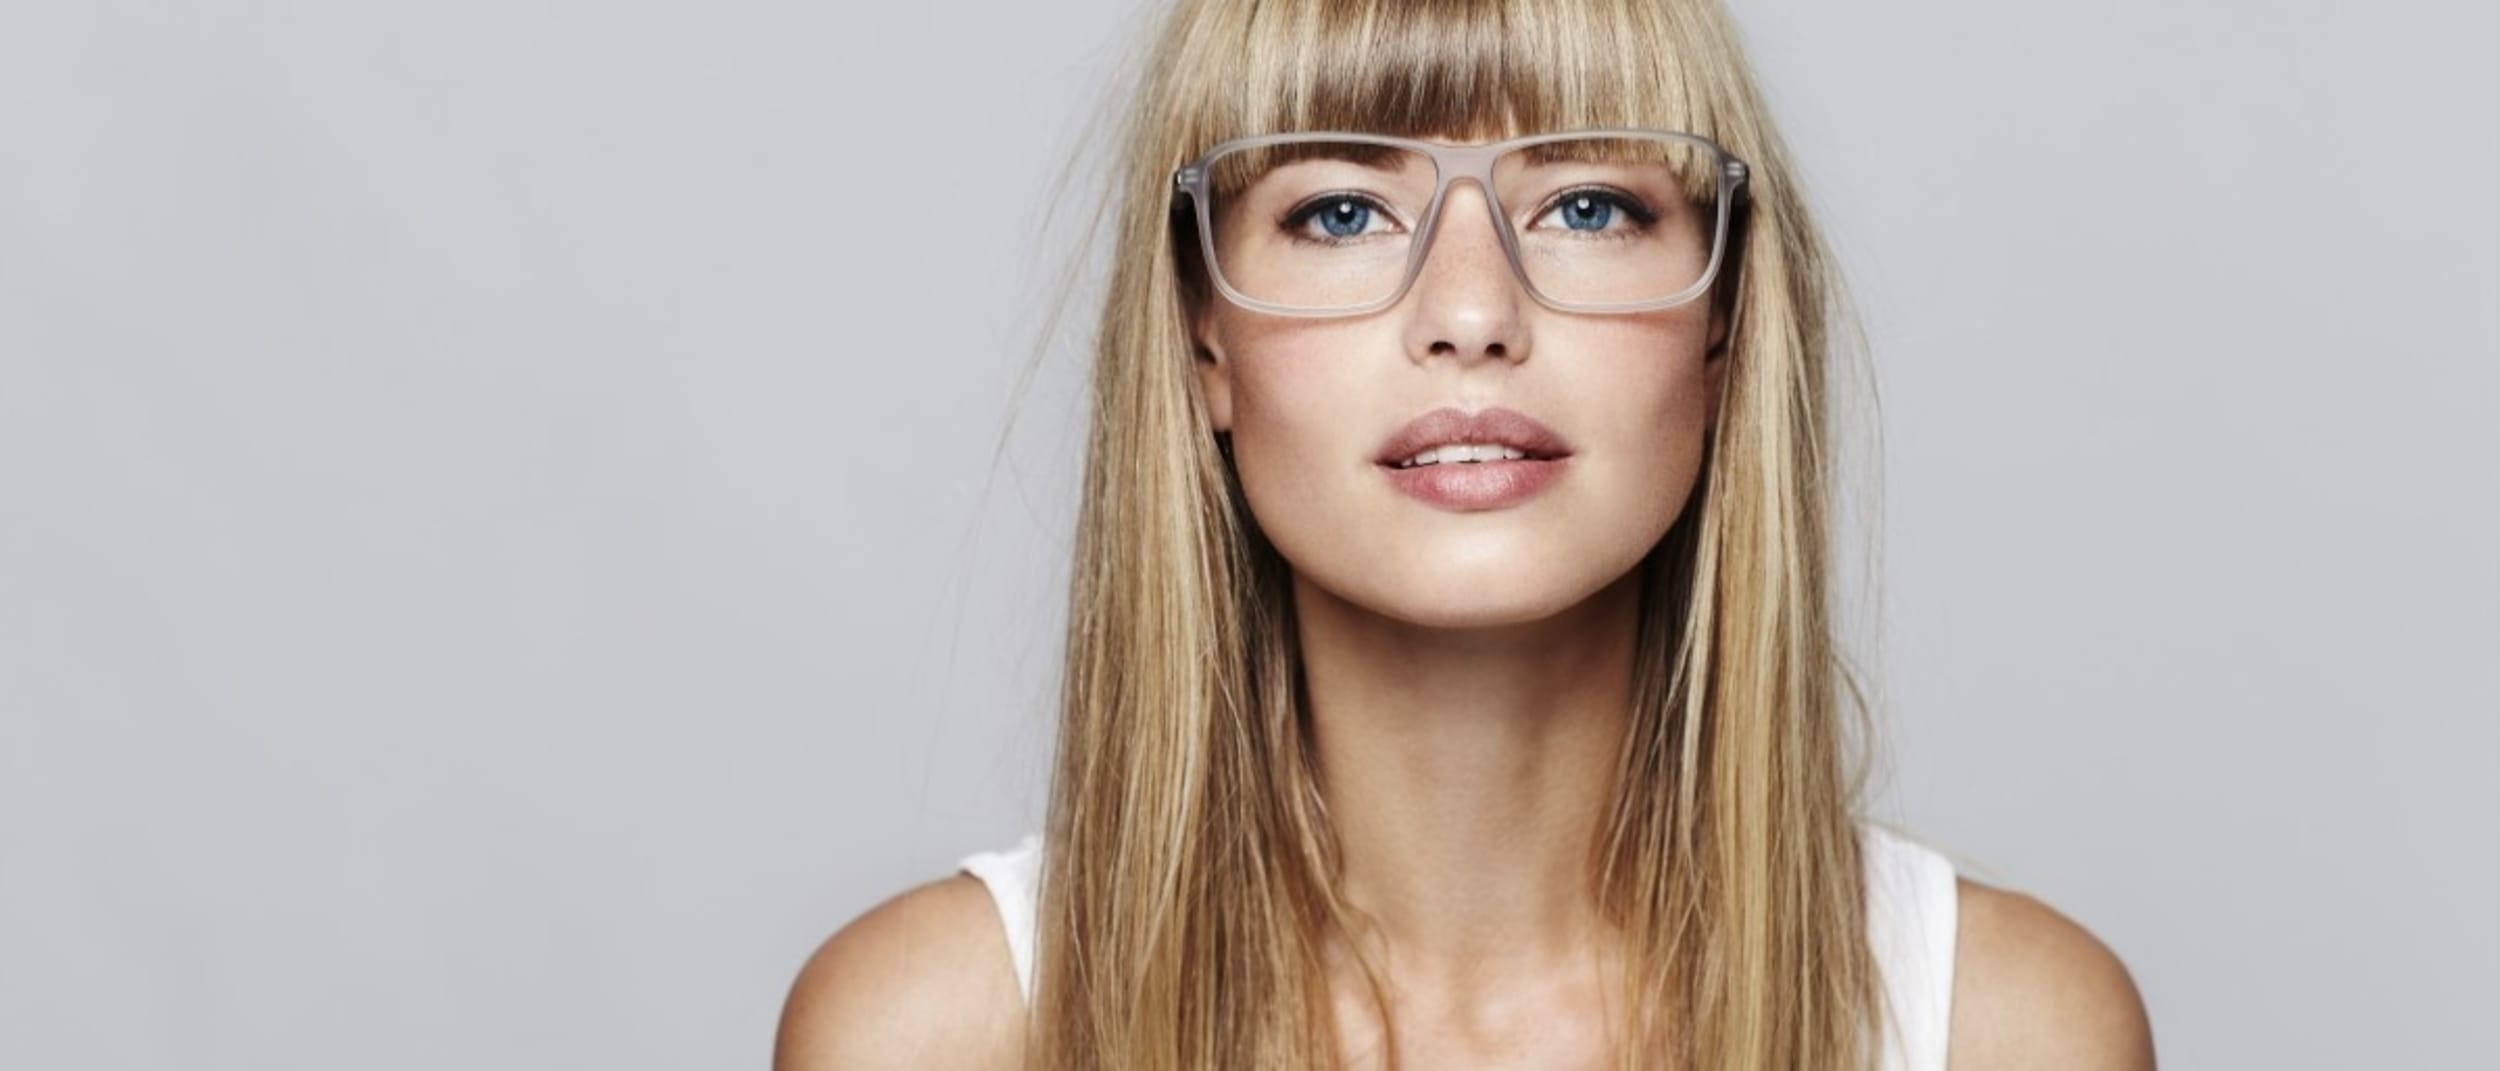 Lenspro: Collect new prescription glasses today